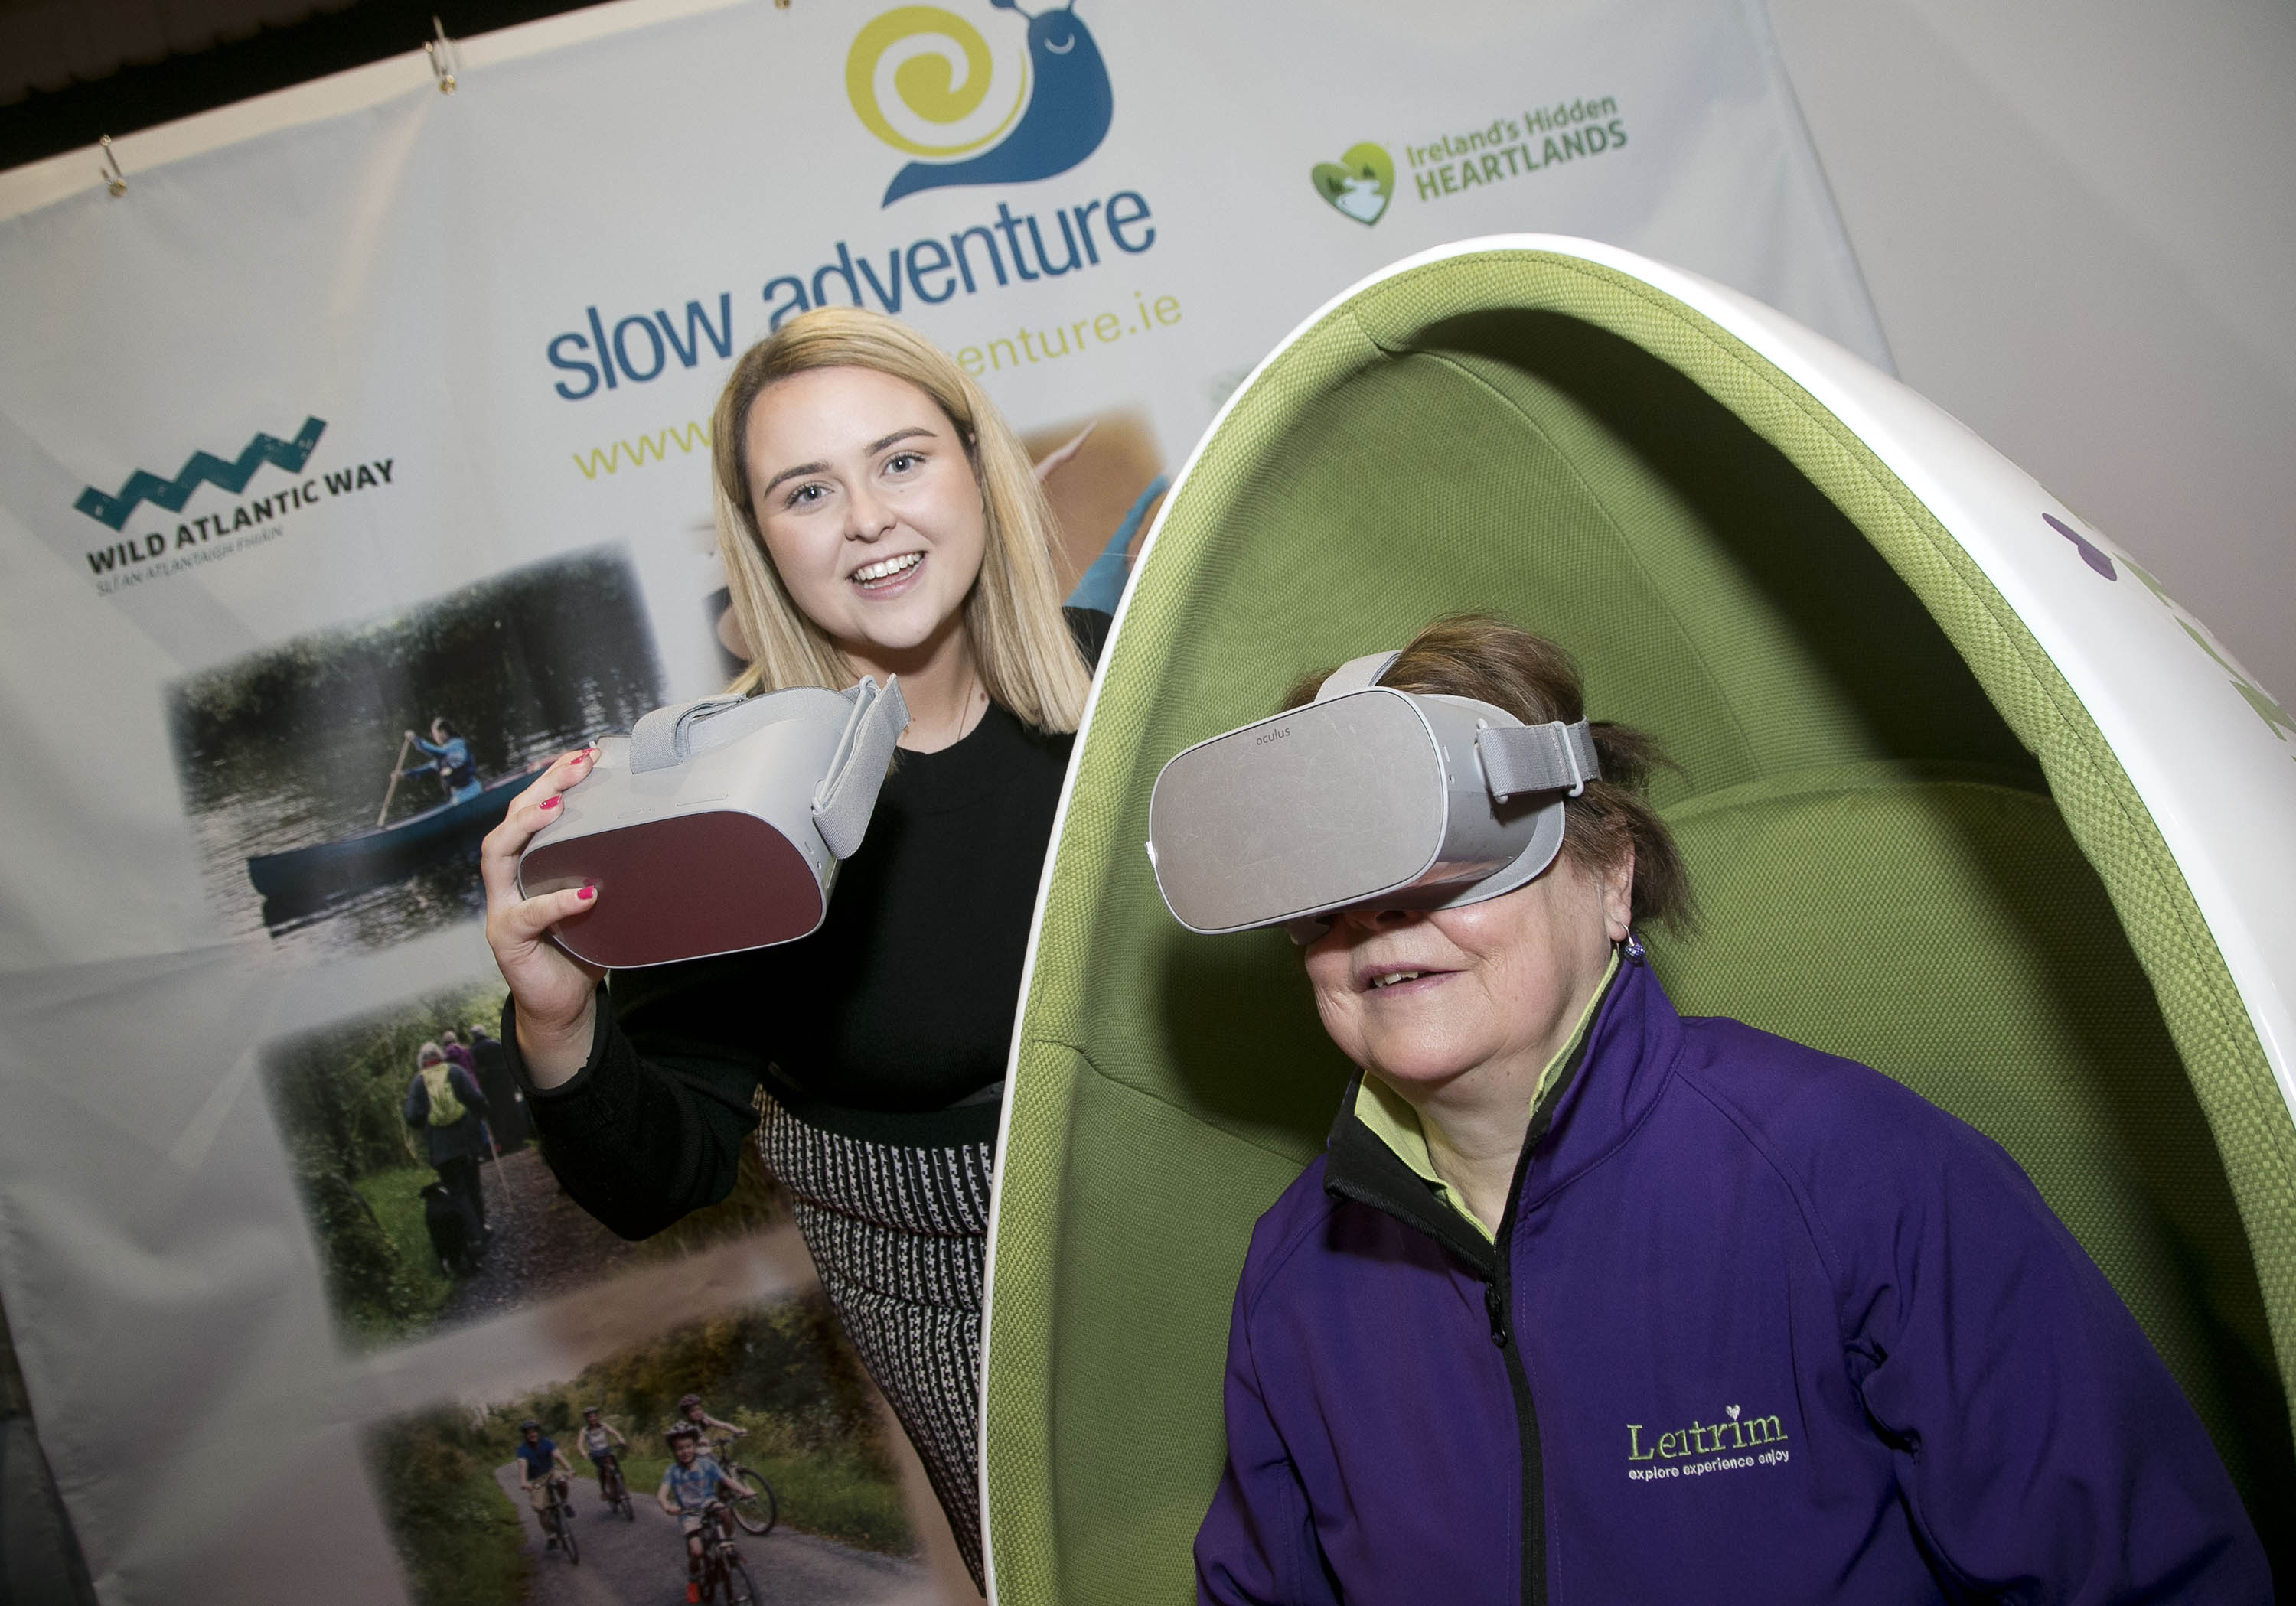 Holiday World visitors transported to Co Leitrim with new Virtual Reality experience